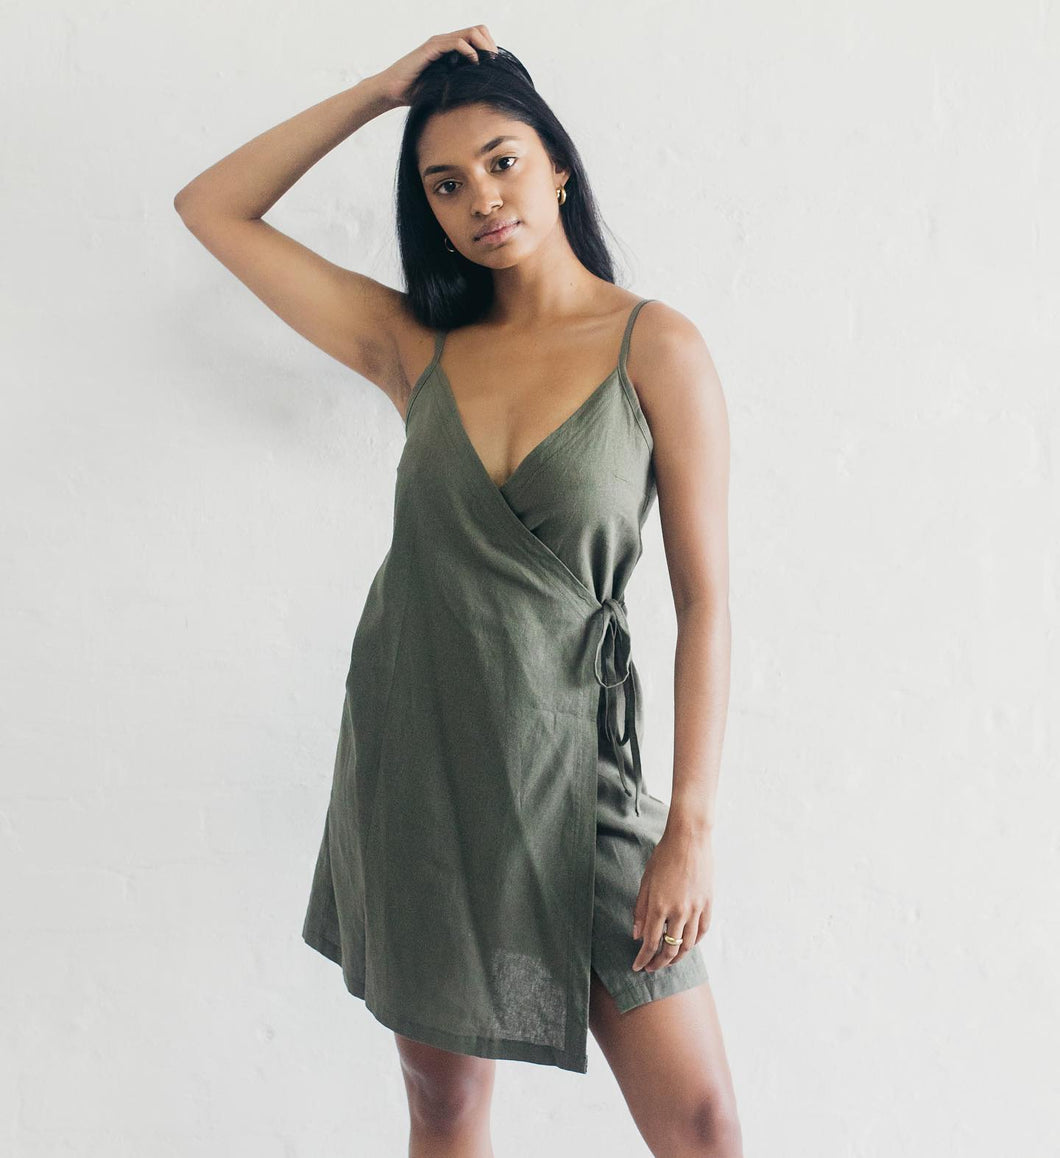 Janni & George Wrap Dress - Olive